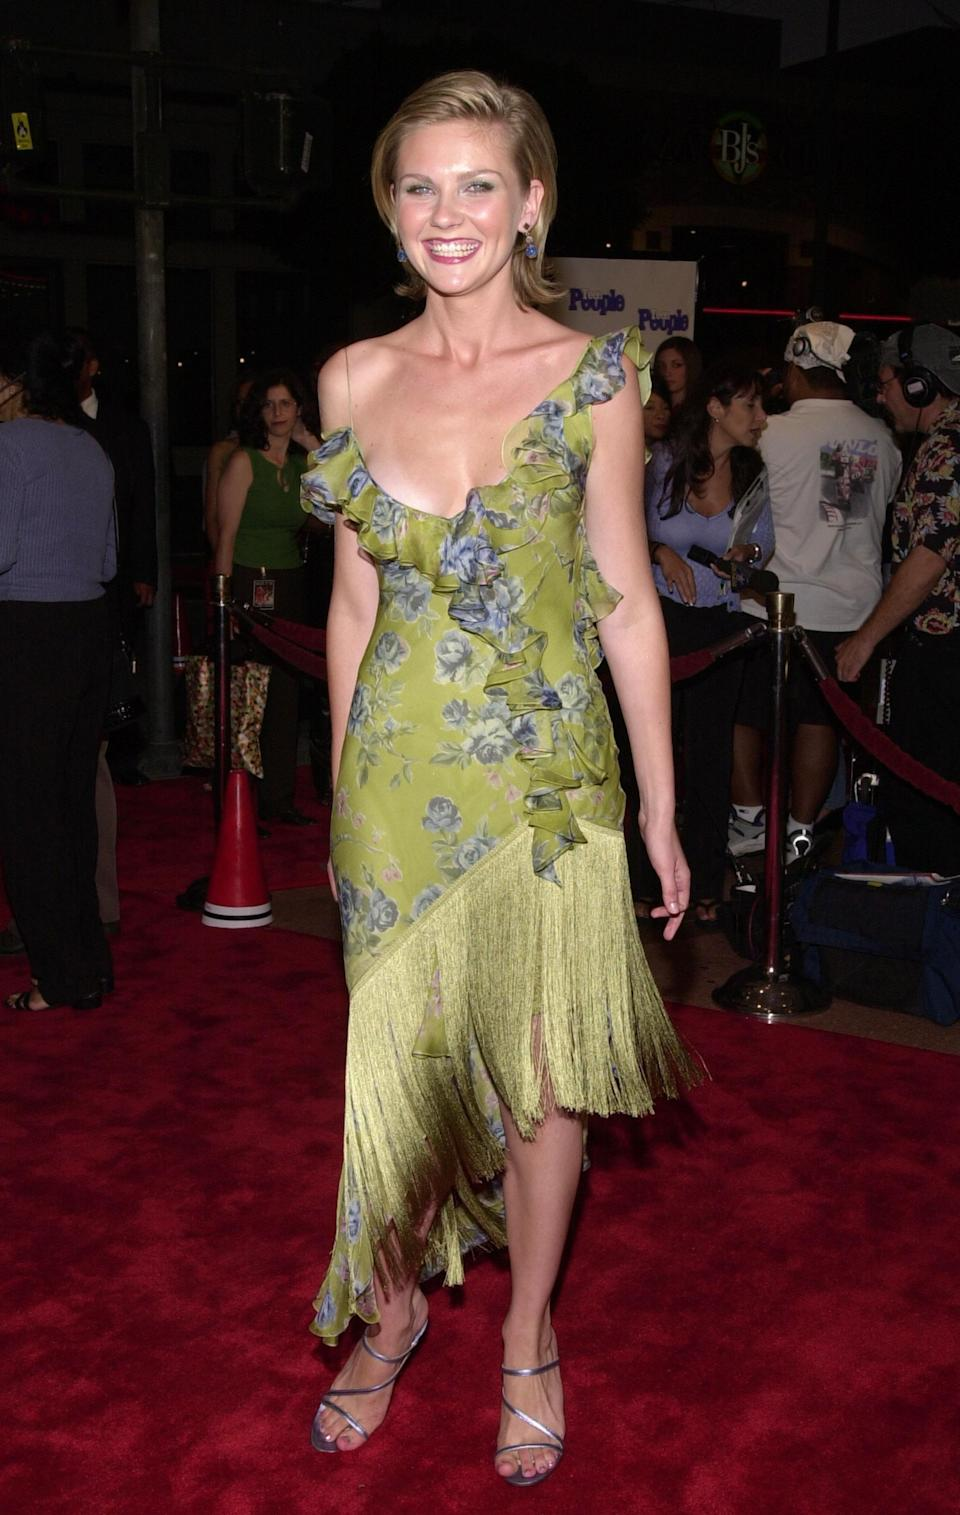 """<p><a class=""""link rapid-noclick-resp"""" href=""""https://www.popsugar.com/Kirsten-Dunst"""" rel=""""nofollow noopener"""" target=""""_blank"""" data-ylk=""""slk:Kirsten Dunst"""">Kirsten Dunst</a>, aka Torrance Shipman, wore a green floral off-the-shoulder dress that would be completely appropriate with a similar strappy metallic heel today. The asymmetric fringe skirt was a sight to see from all angles, and the backless design added extra sex appeal.</p>"""